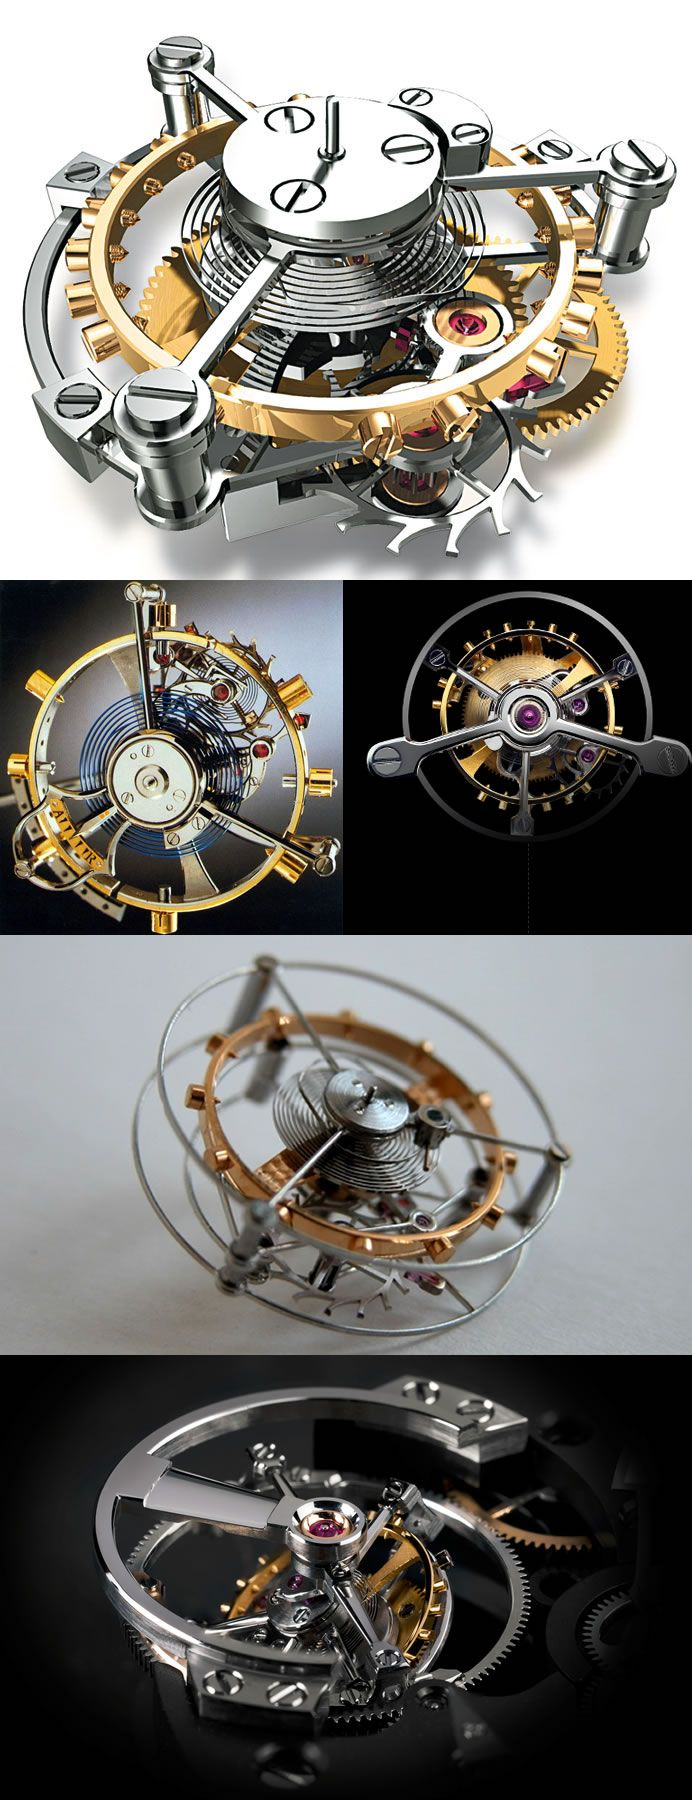 Tourbillon is an addition to the mechanics of a watch escapement. Developed around 1795 by the French-Swiss watchmaker Abraham-Louis Breguet from an earlier idea by the English chronometer maker John Arnold, a tourbillon aims to counter the effects of gravity by mounting the escapement and balance wheel in a rotating cage, to negate the effect of gravity when the timepiece (thus the escapement) is stuck in a certain position.